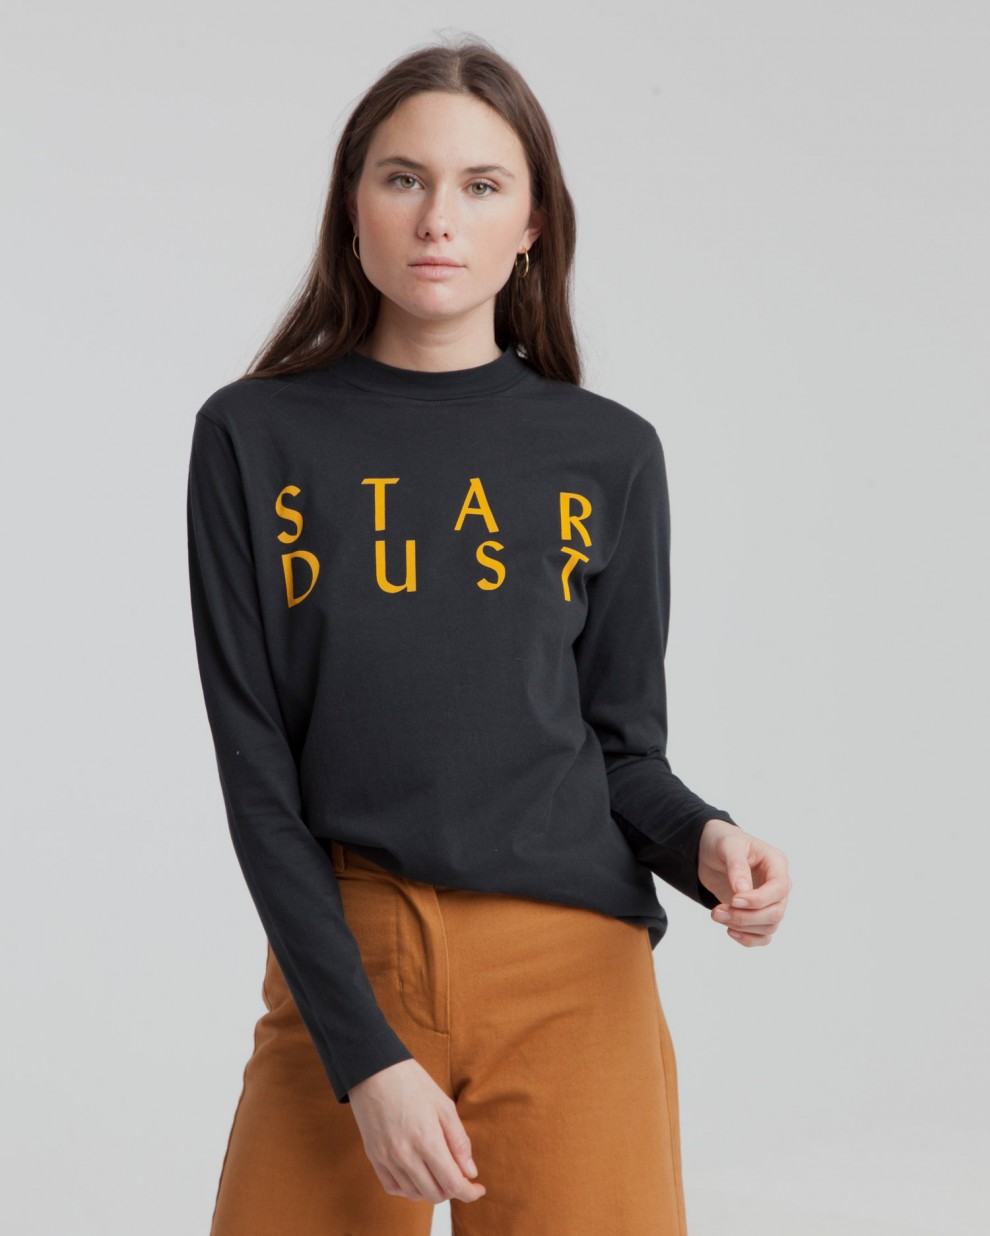 Star Dust L/S T-Shirt